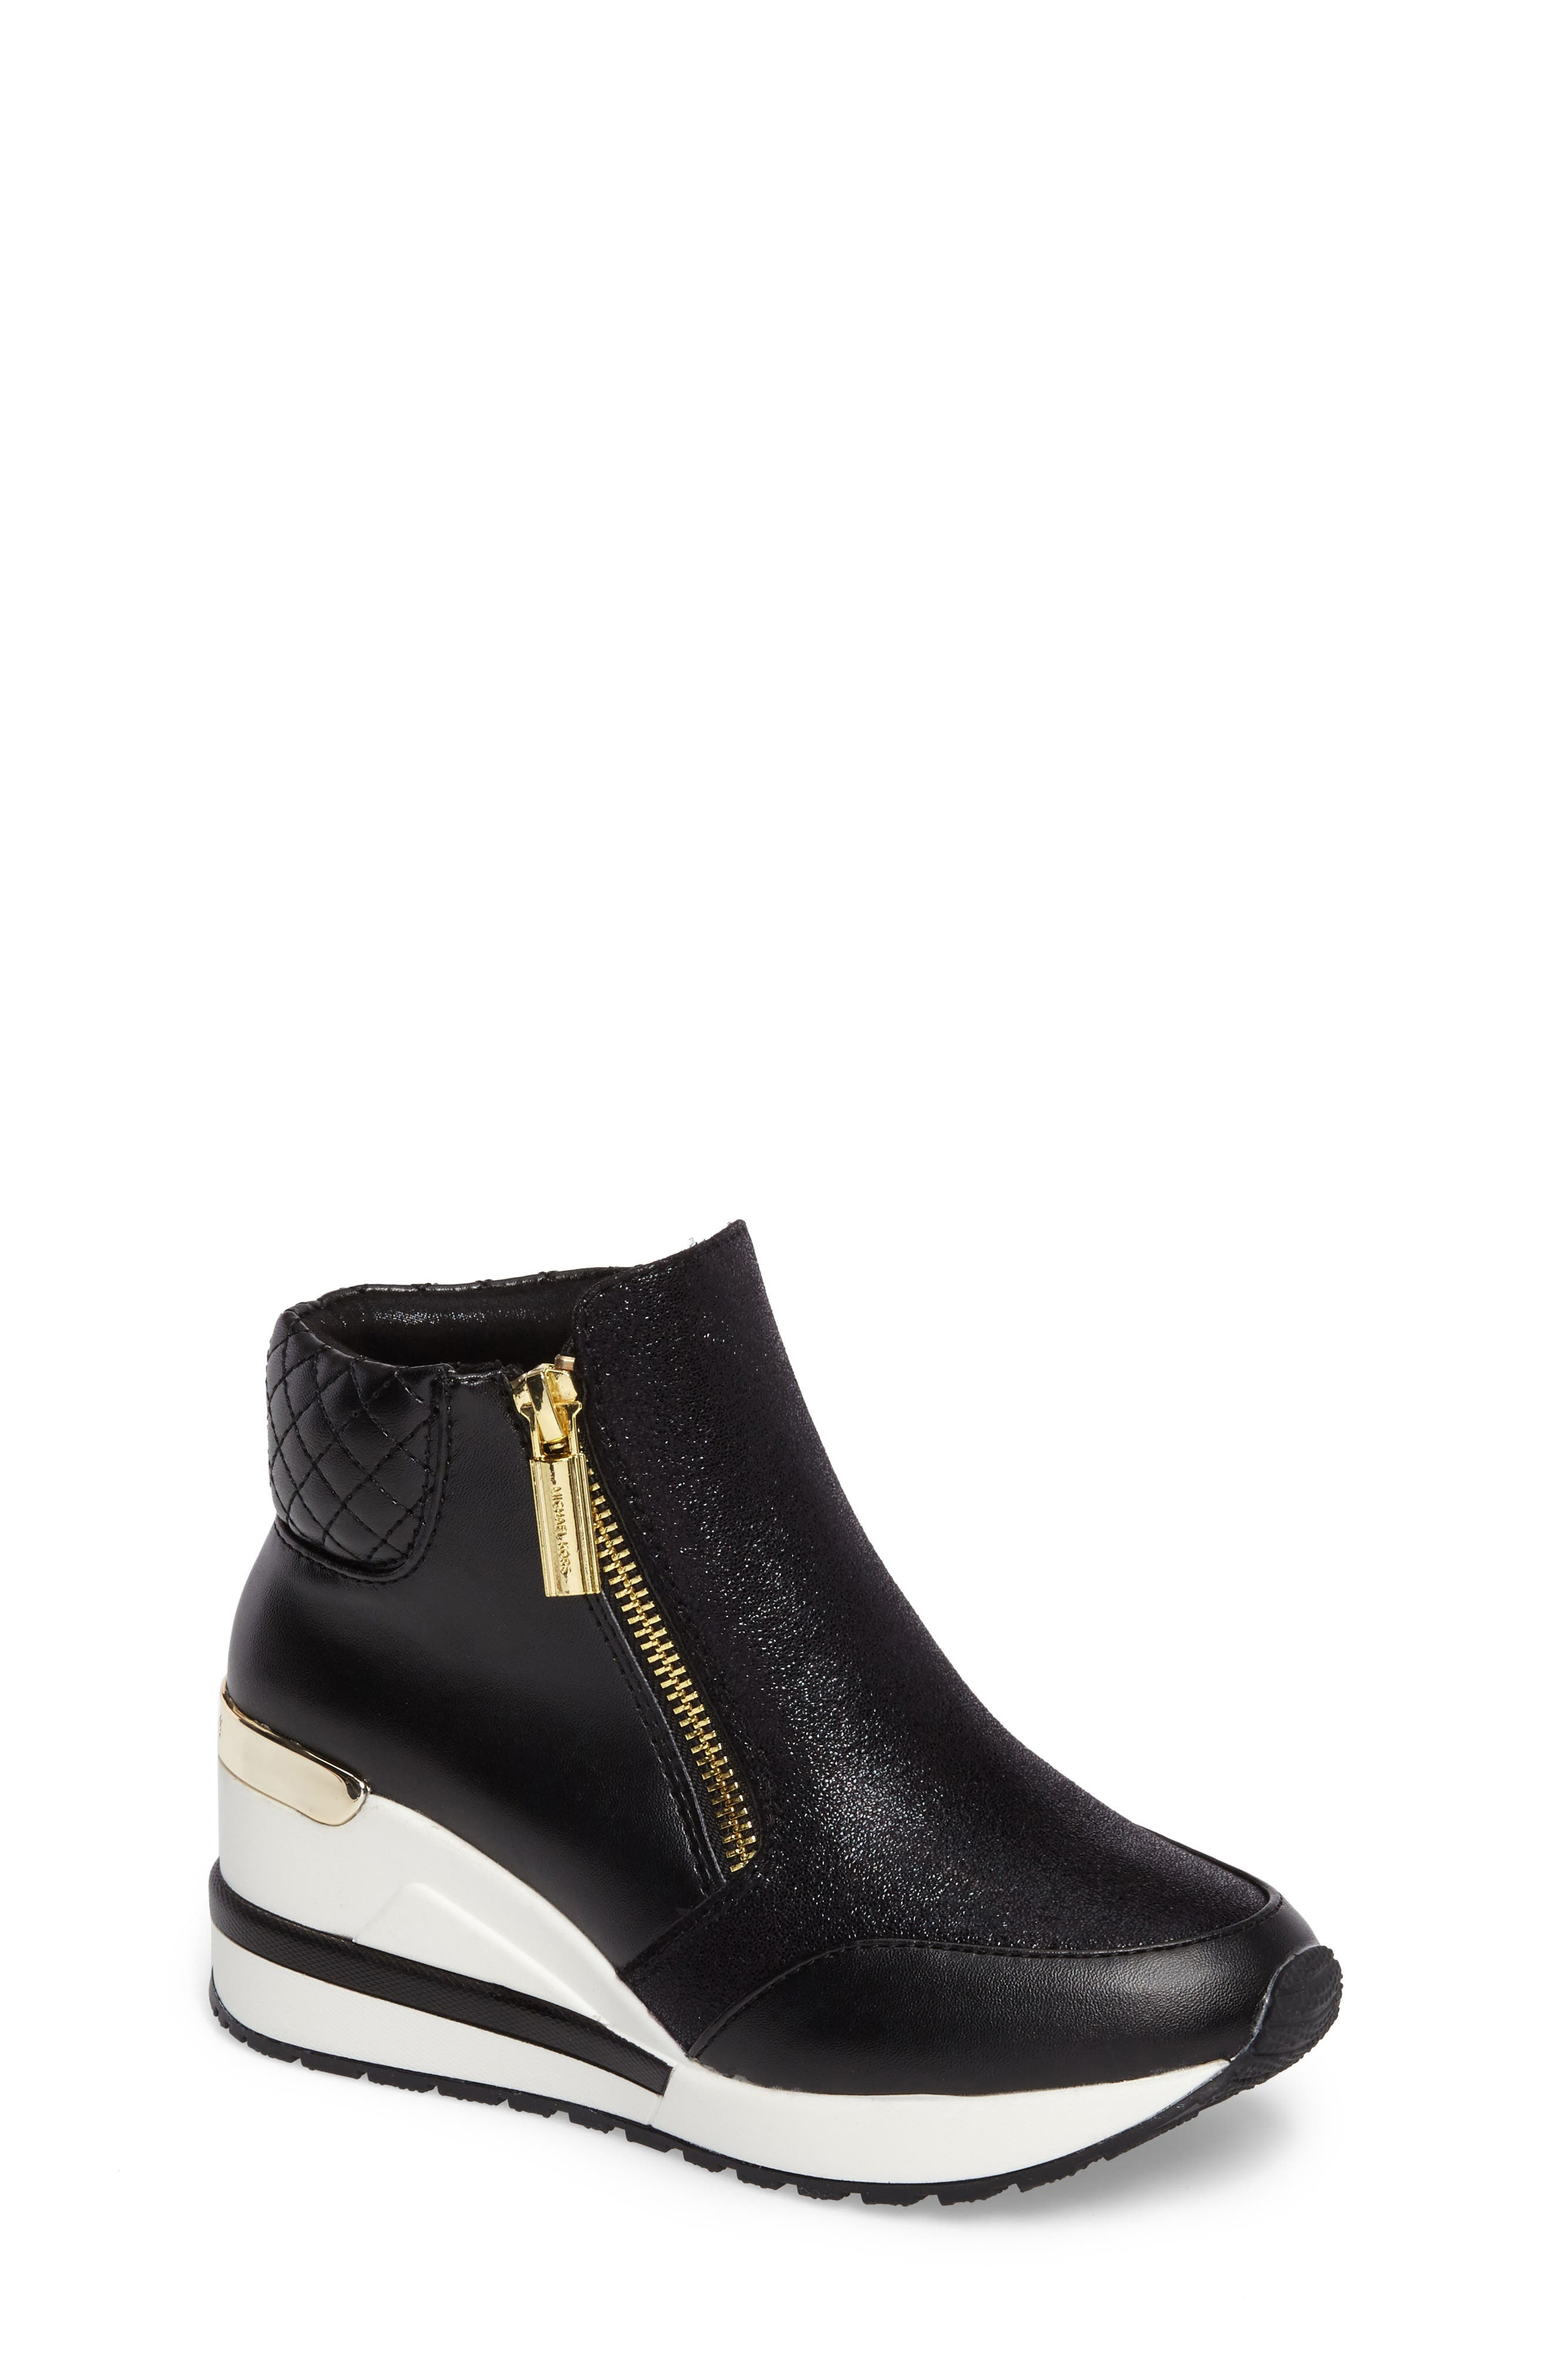 MICHAEL Michael Kors Neo Gege Wedge Sneaker Bootie (Toddler, Little Kid & Big Kid)